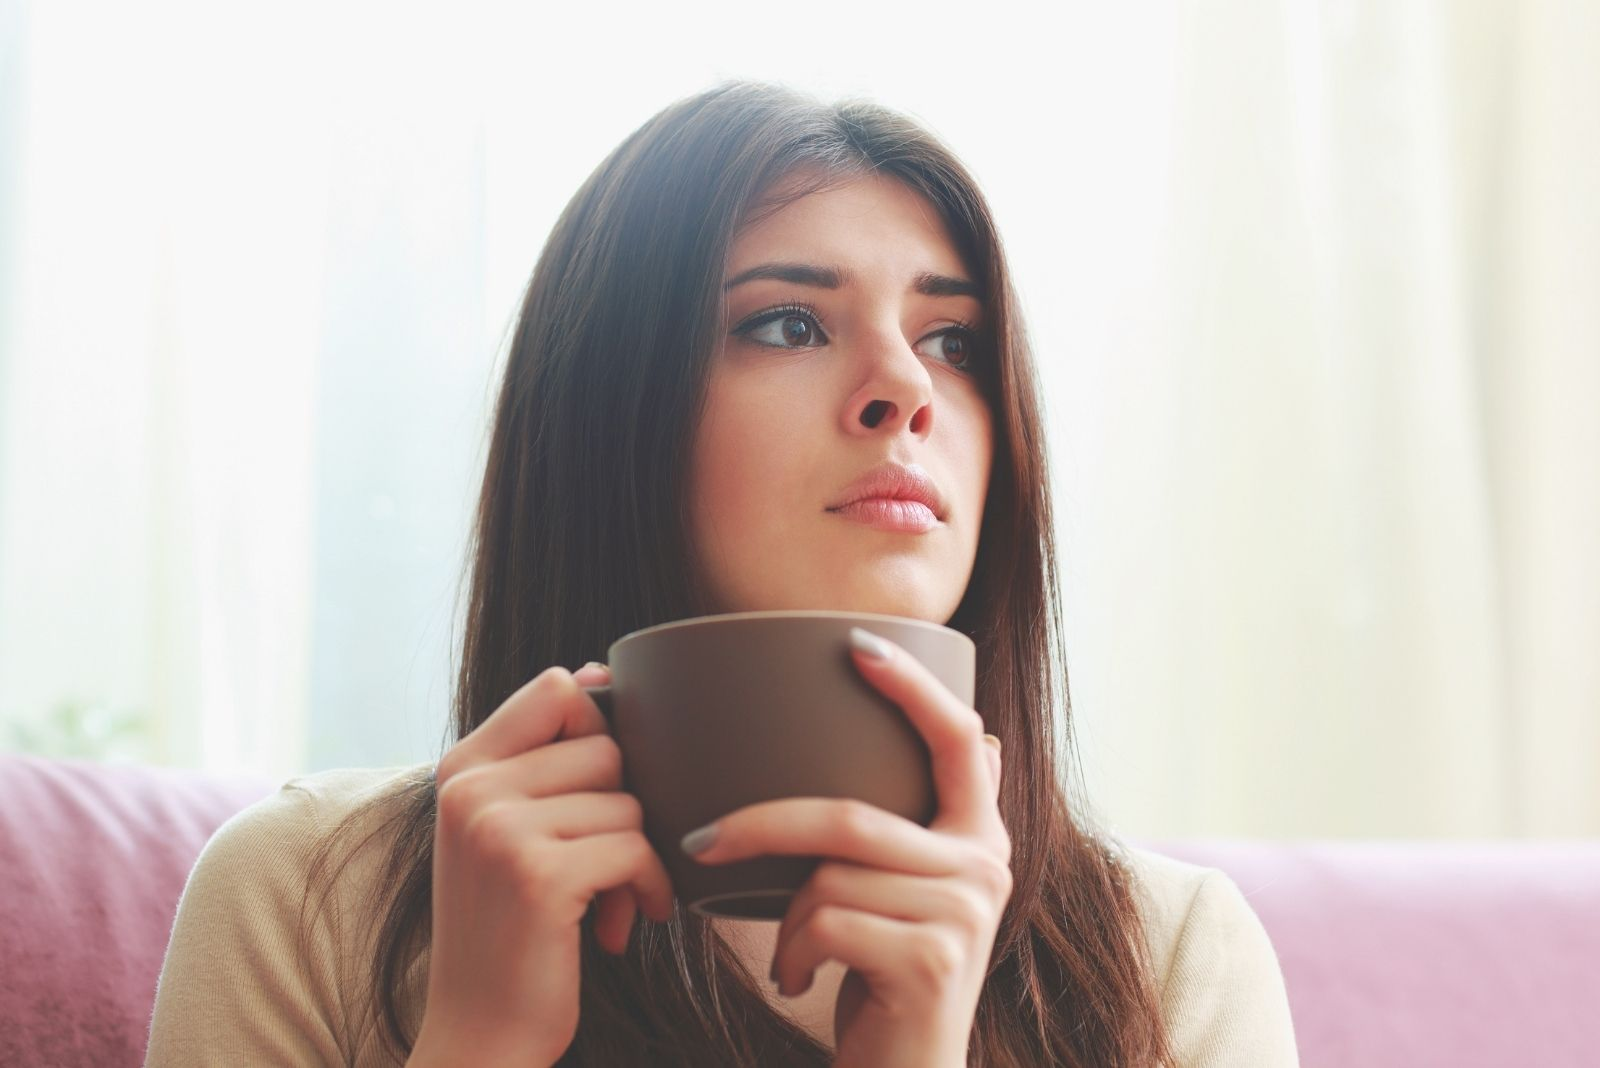 young hispanic pensive woman looking away while holding a cup of beverage